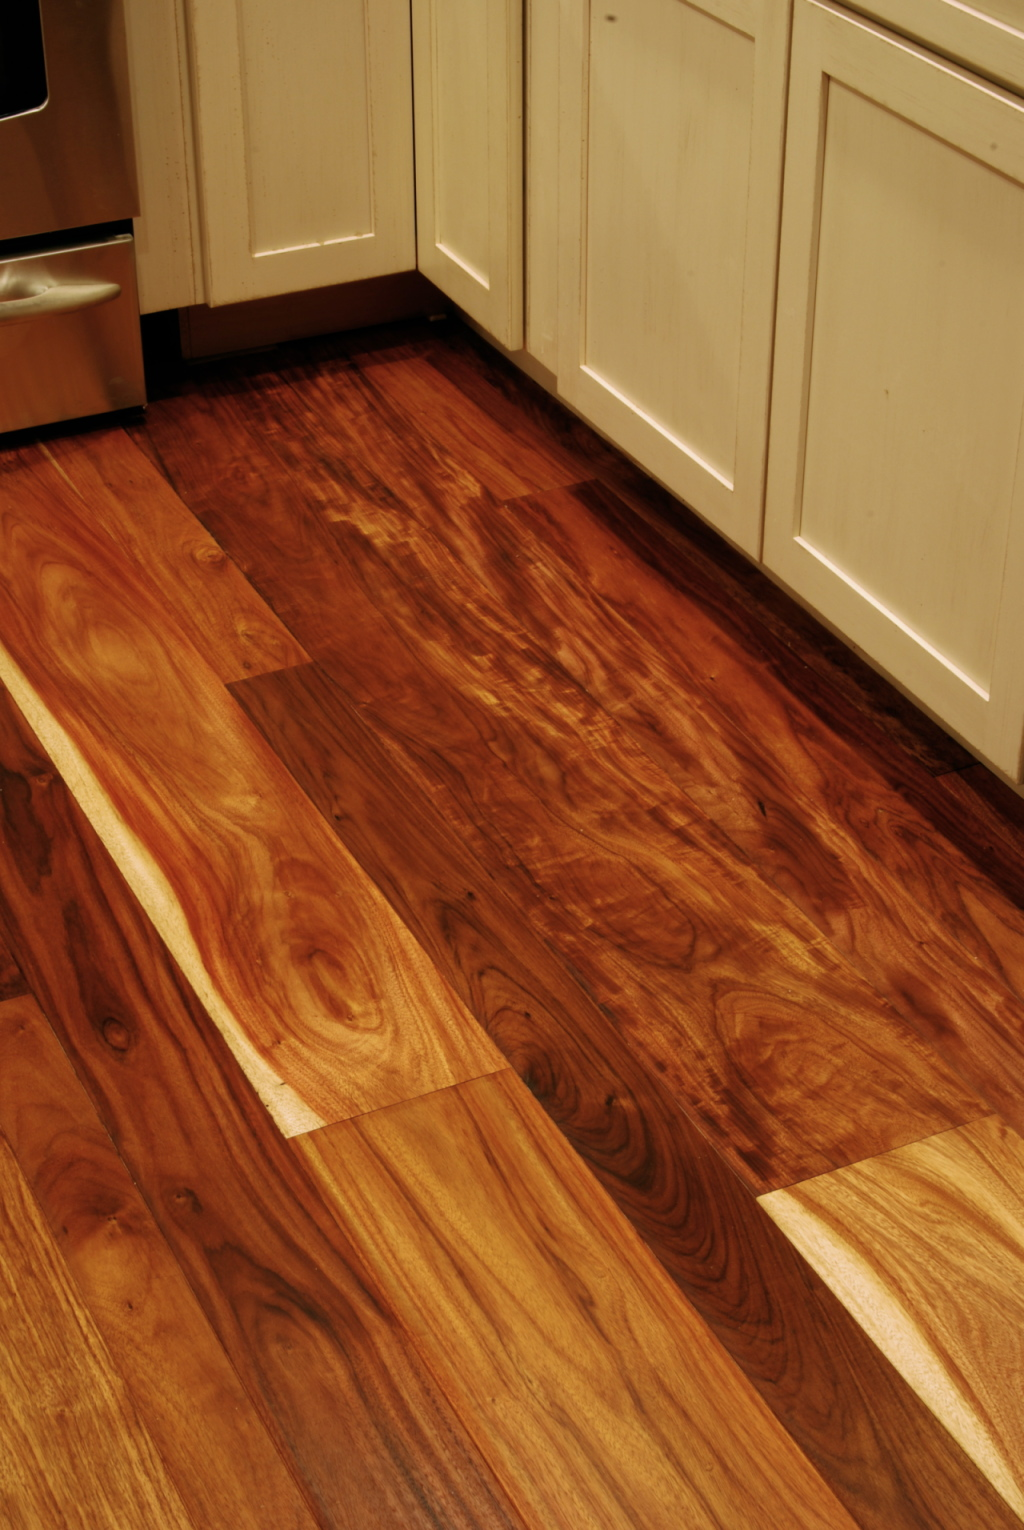 Para rosewood custom wide plank 3 4 x 4 to 24 4 39 14 for Pre finished hardwood flooring